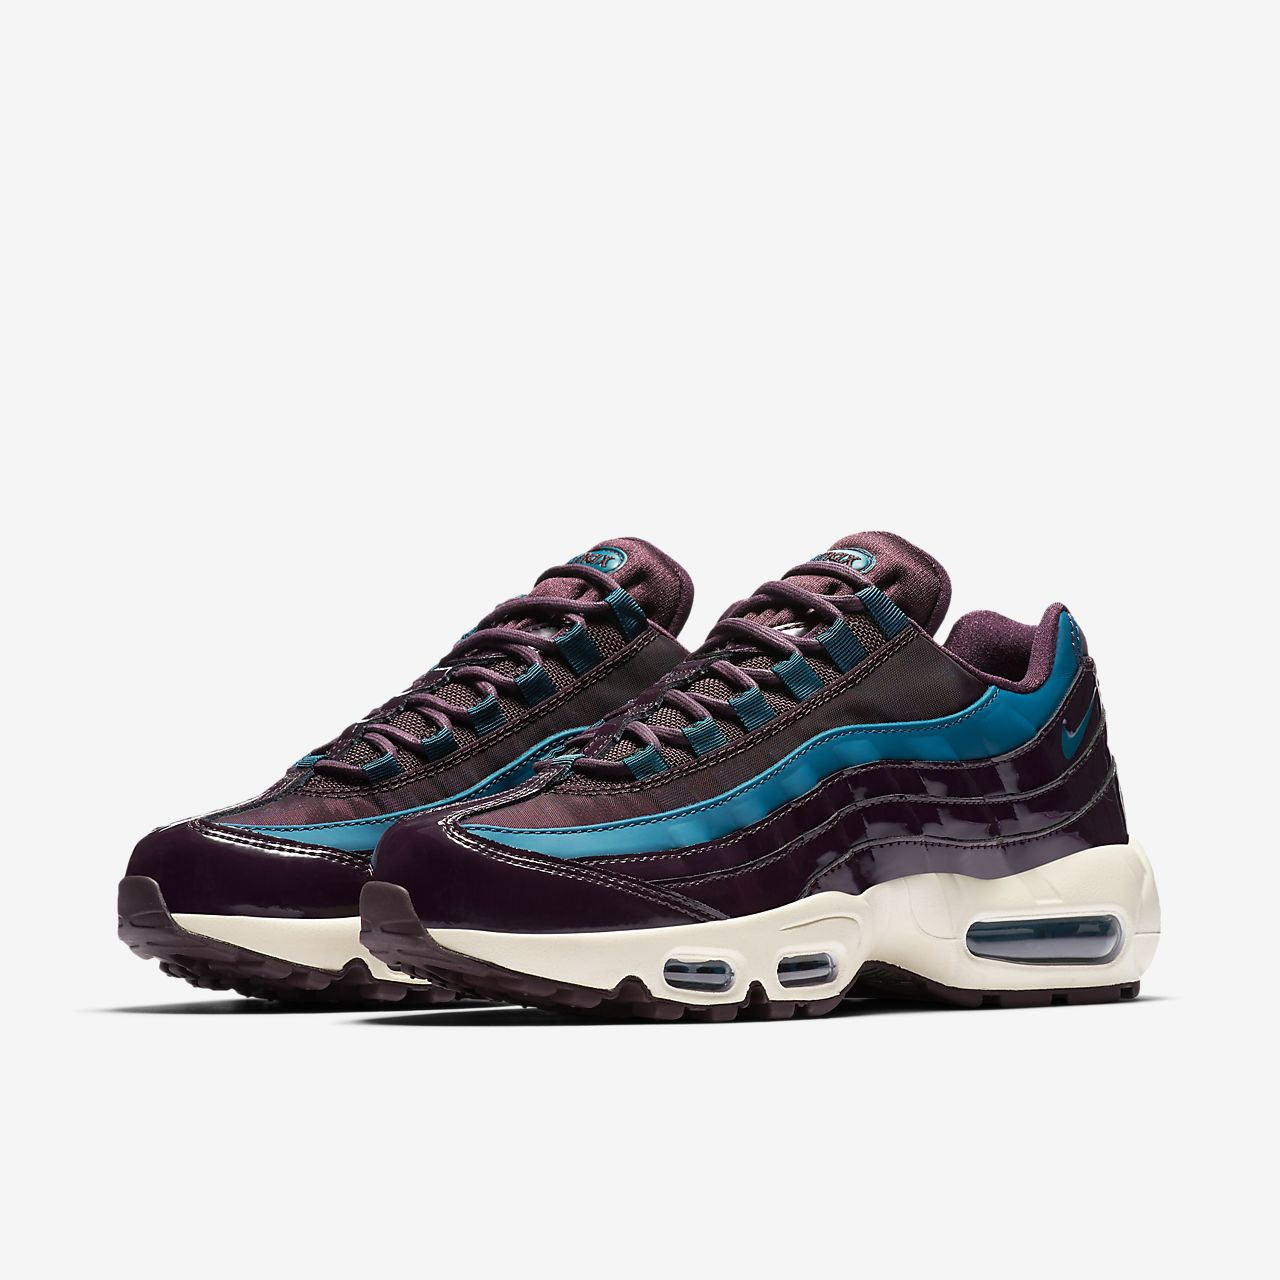 3cf7b9c4c0 nike air max 1995 cheap,up to 30% Discounts